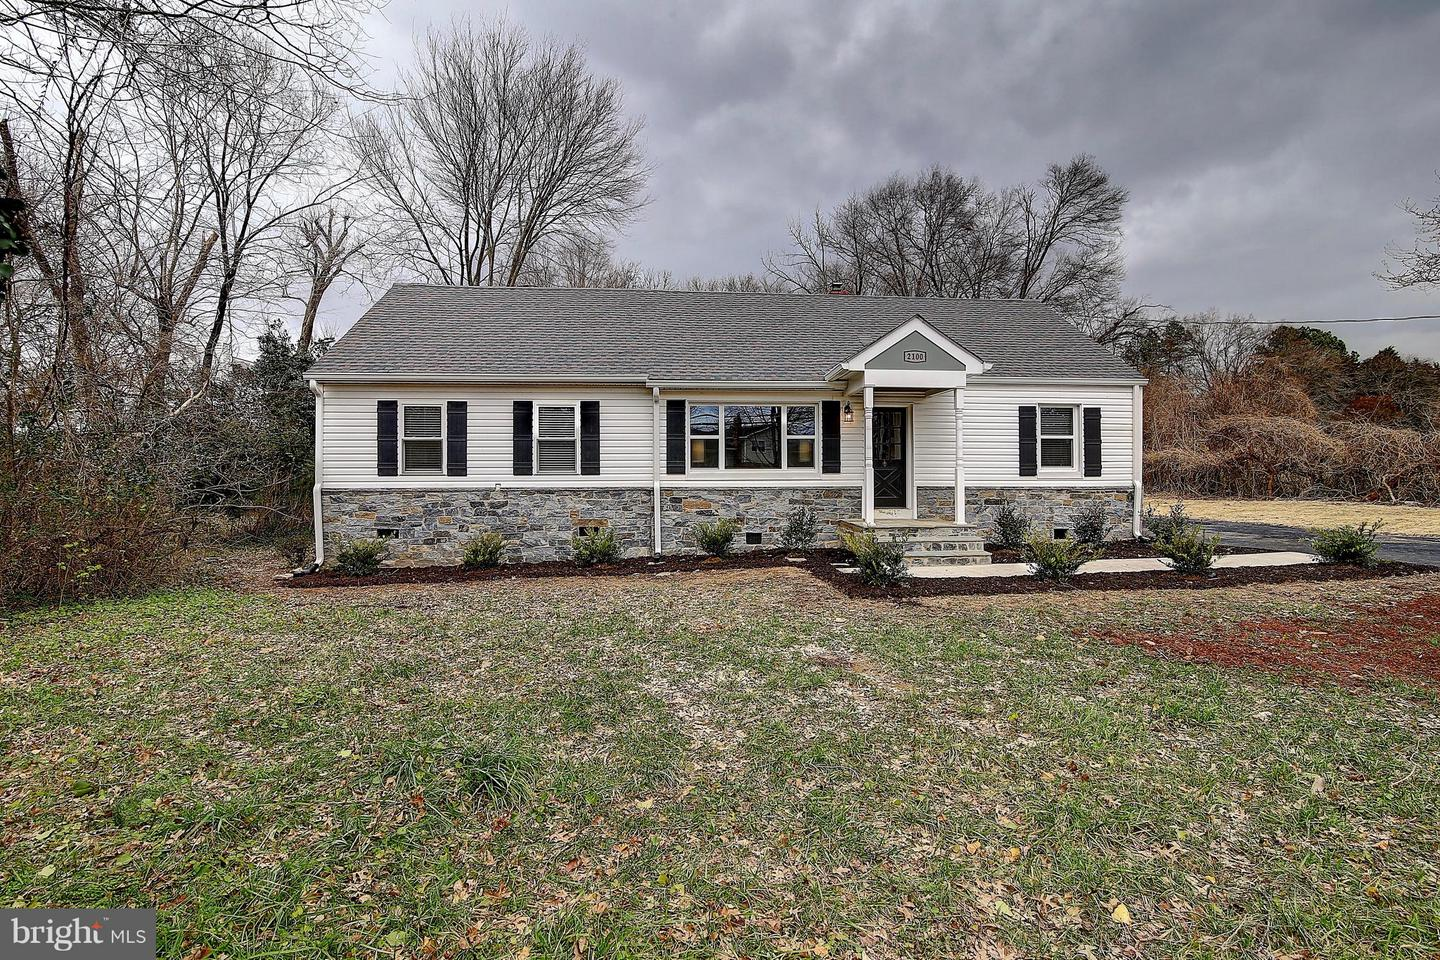 Additional photo for property listing at 2100 Elkin St 2100 Elkin St Alexandria, Virginia 22308 United States